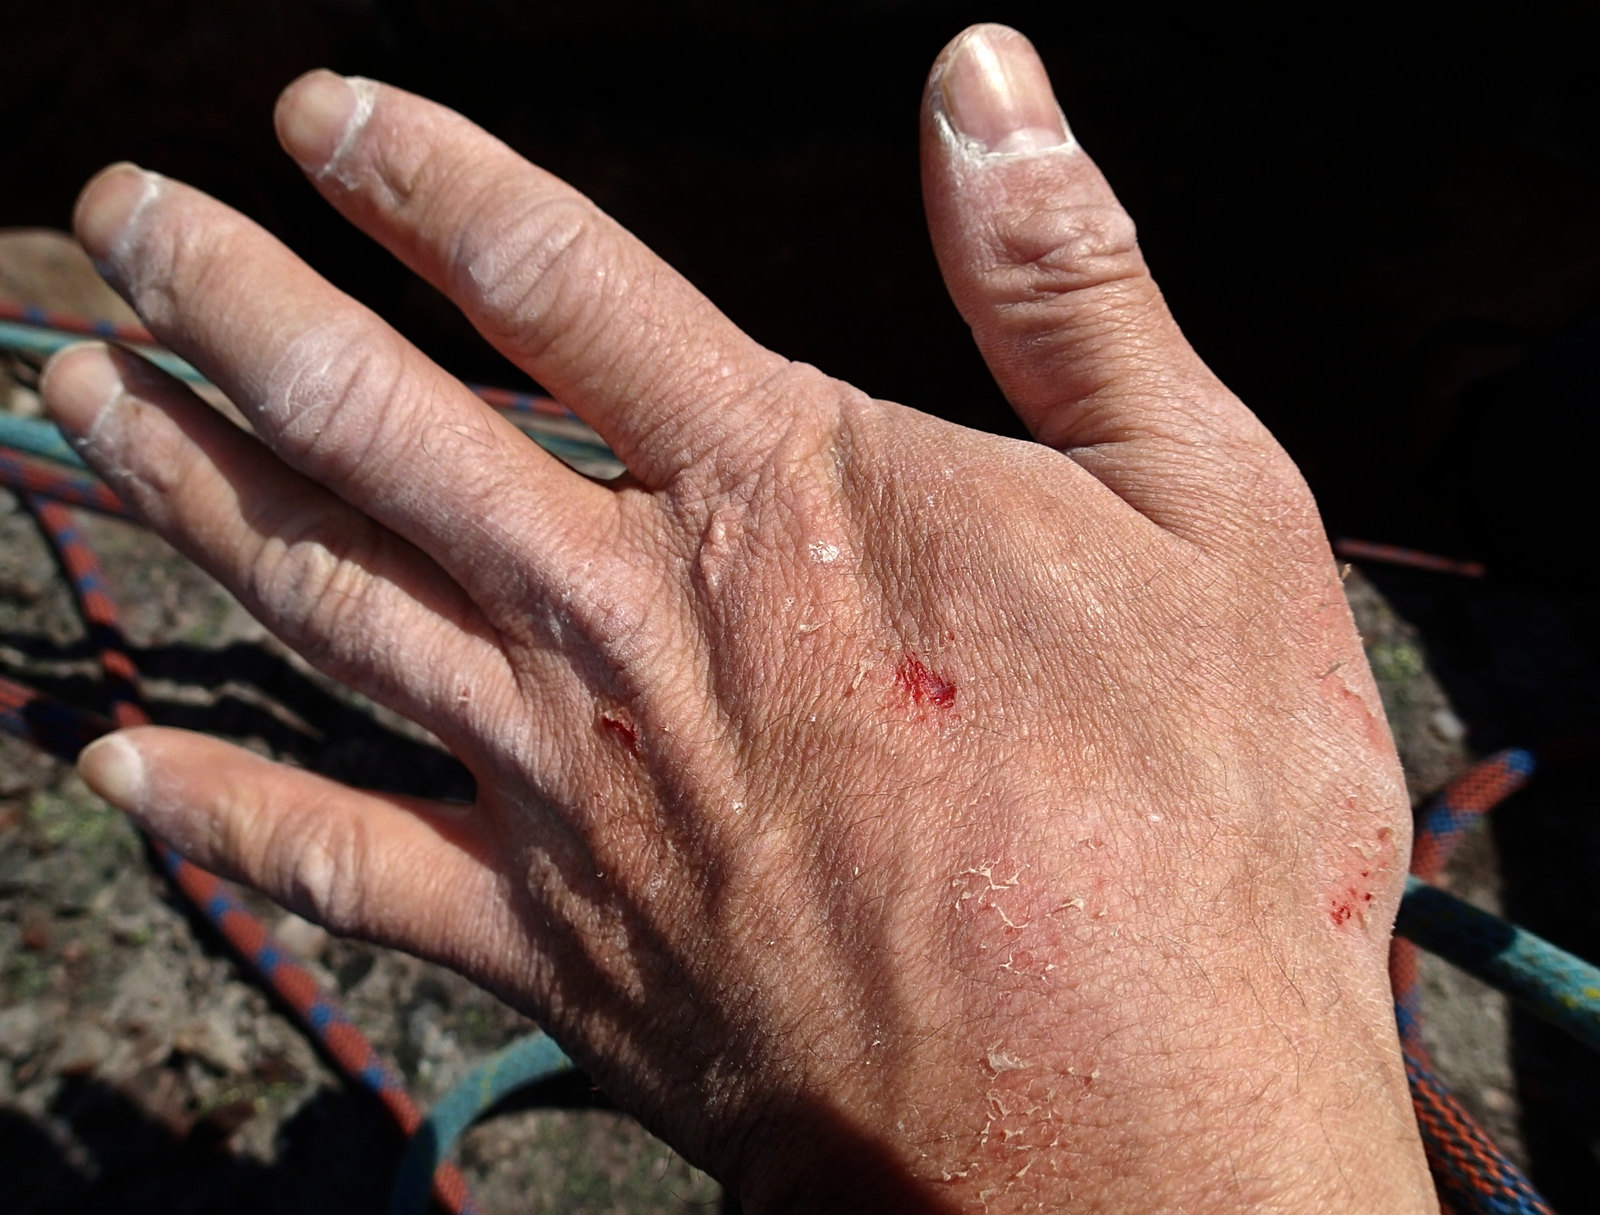 Wrecked hand